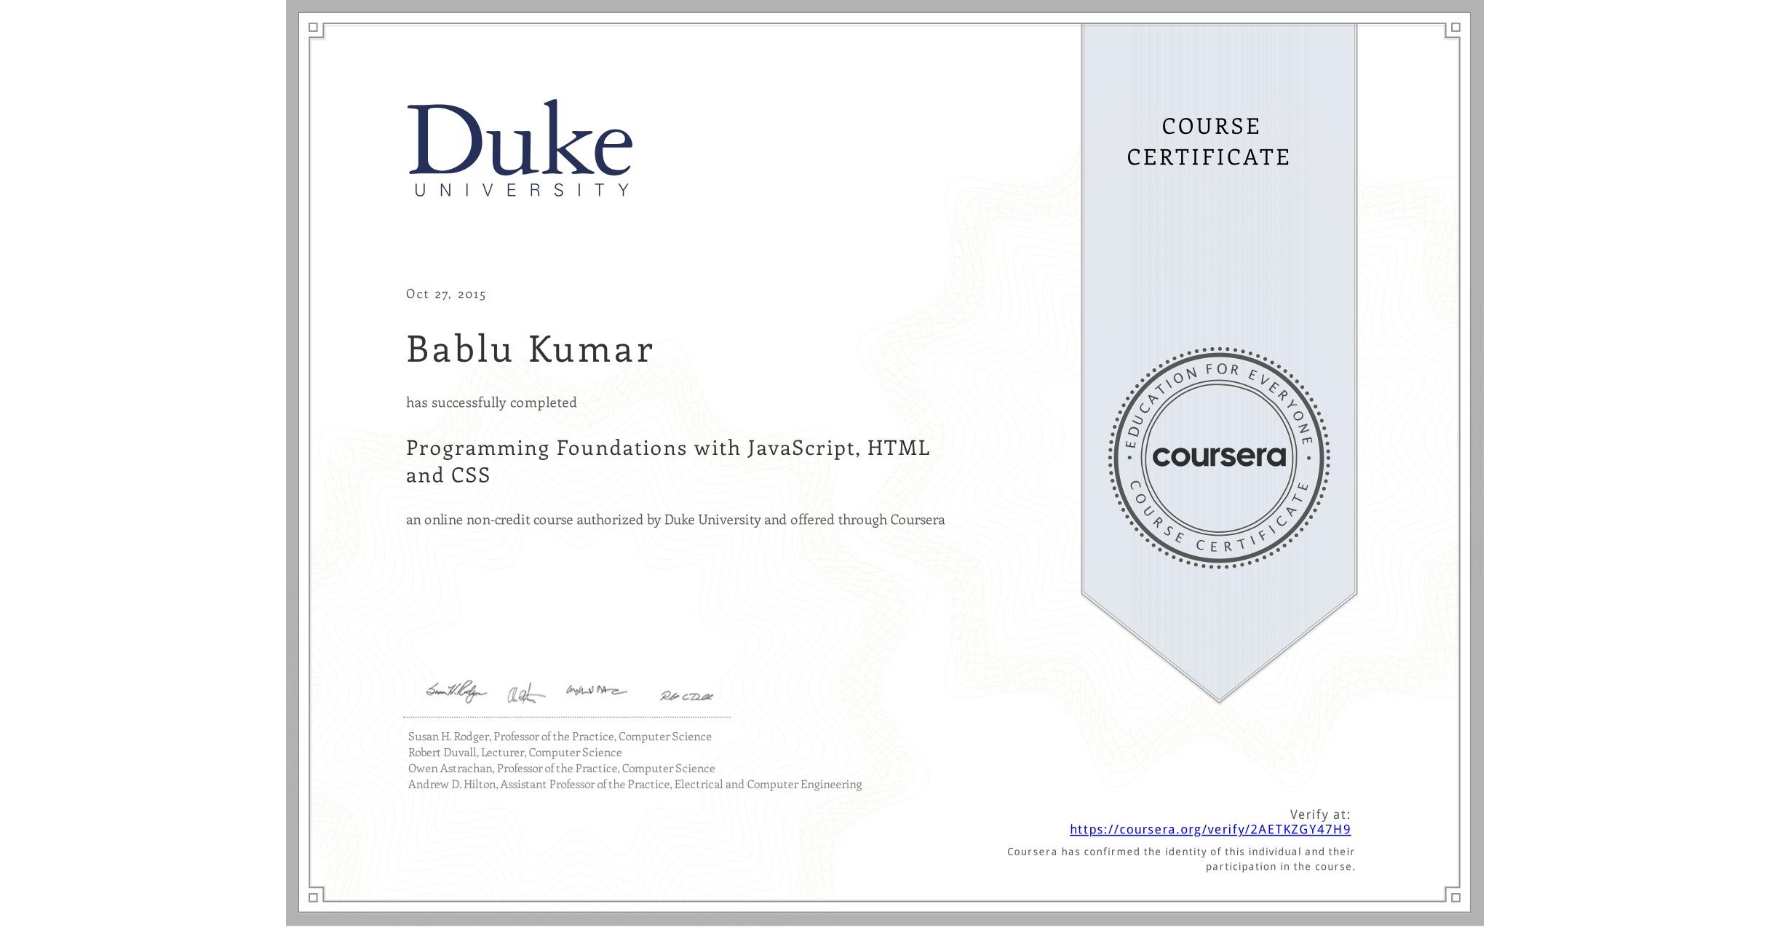 View certificate for Bablu Kumar, Programming Foundations with JavaScript, HTML and CSS, an online non-credit course authorized by Duke University and offered through Coursera